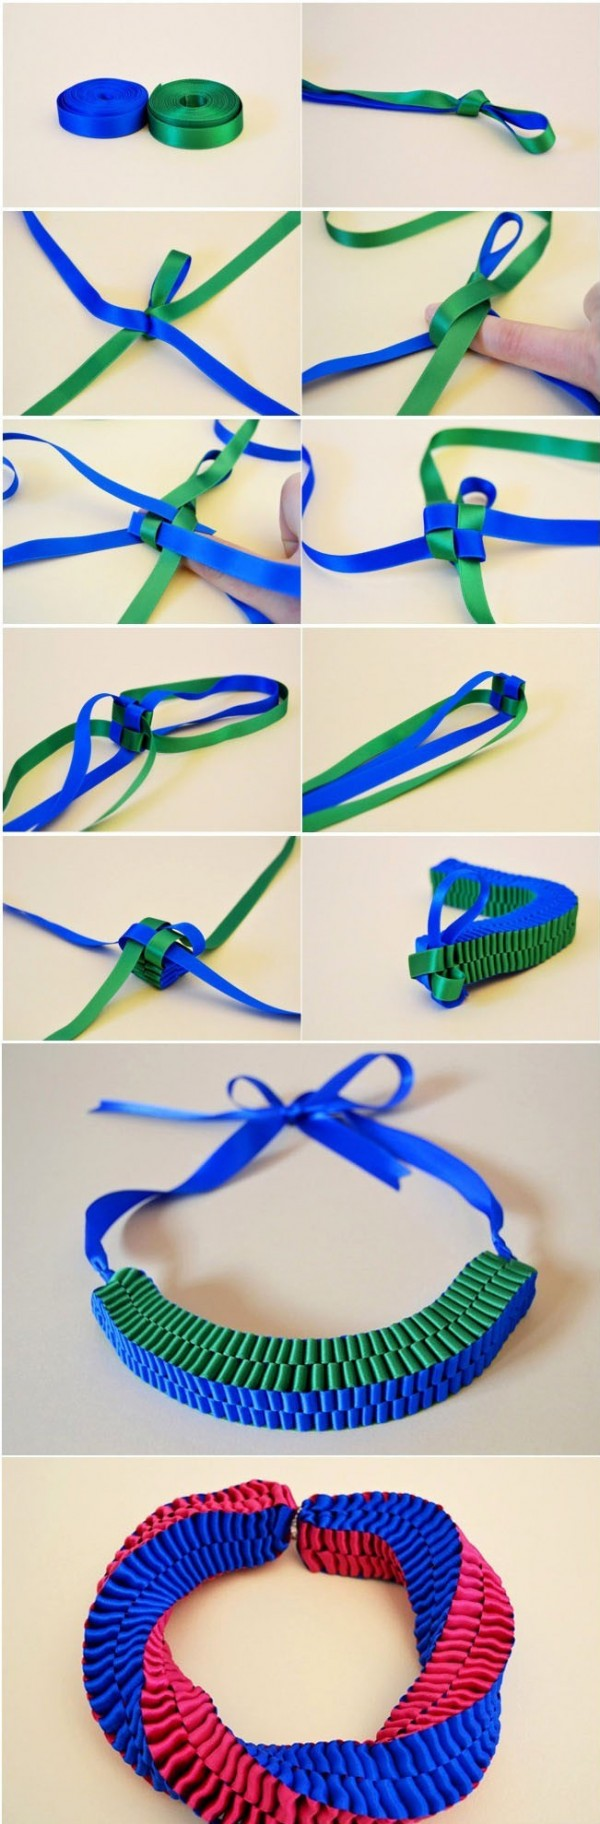 How To Make A Ribbon Bracelet 1